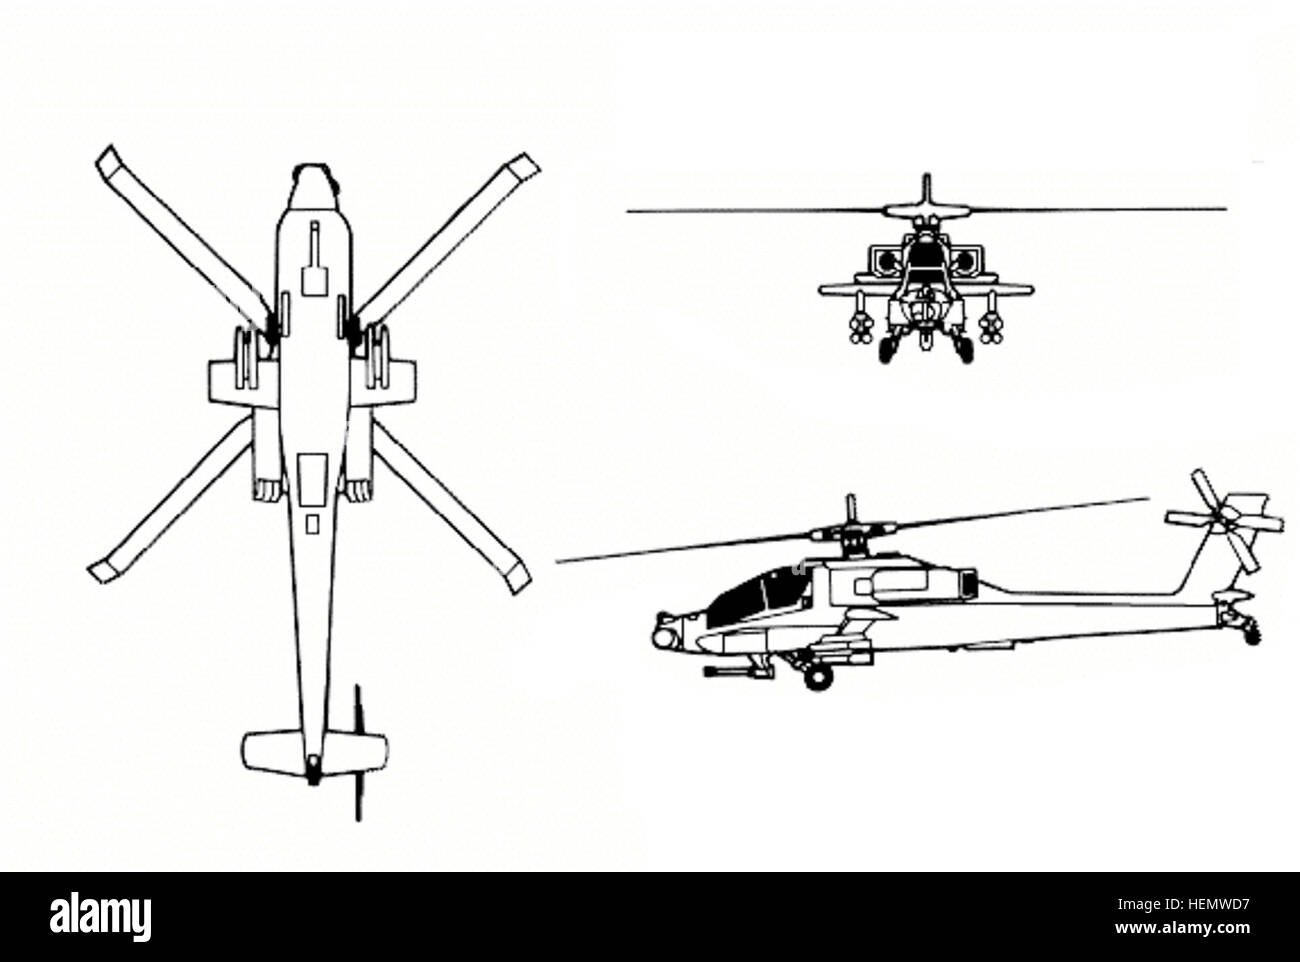 hight resolution of mcdonnell douglas ah 64 apache